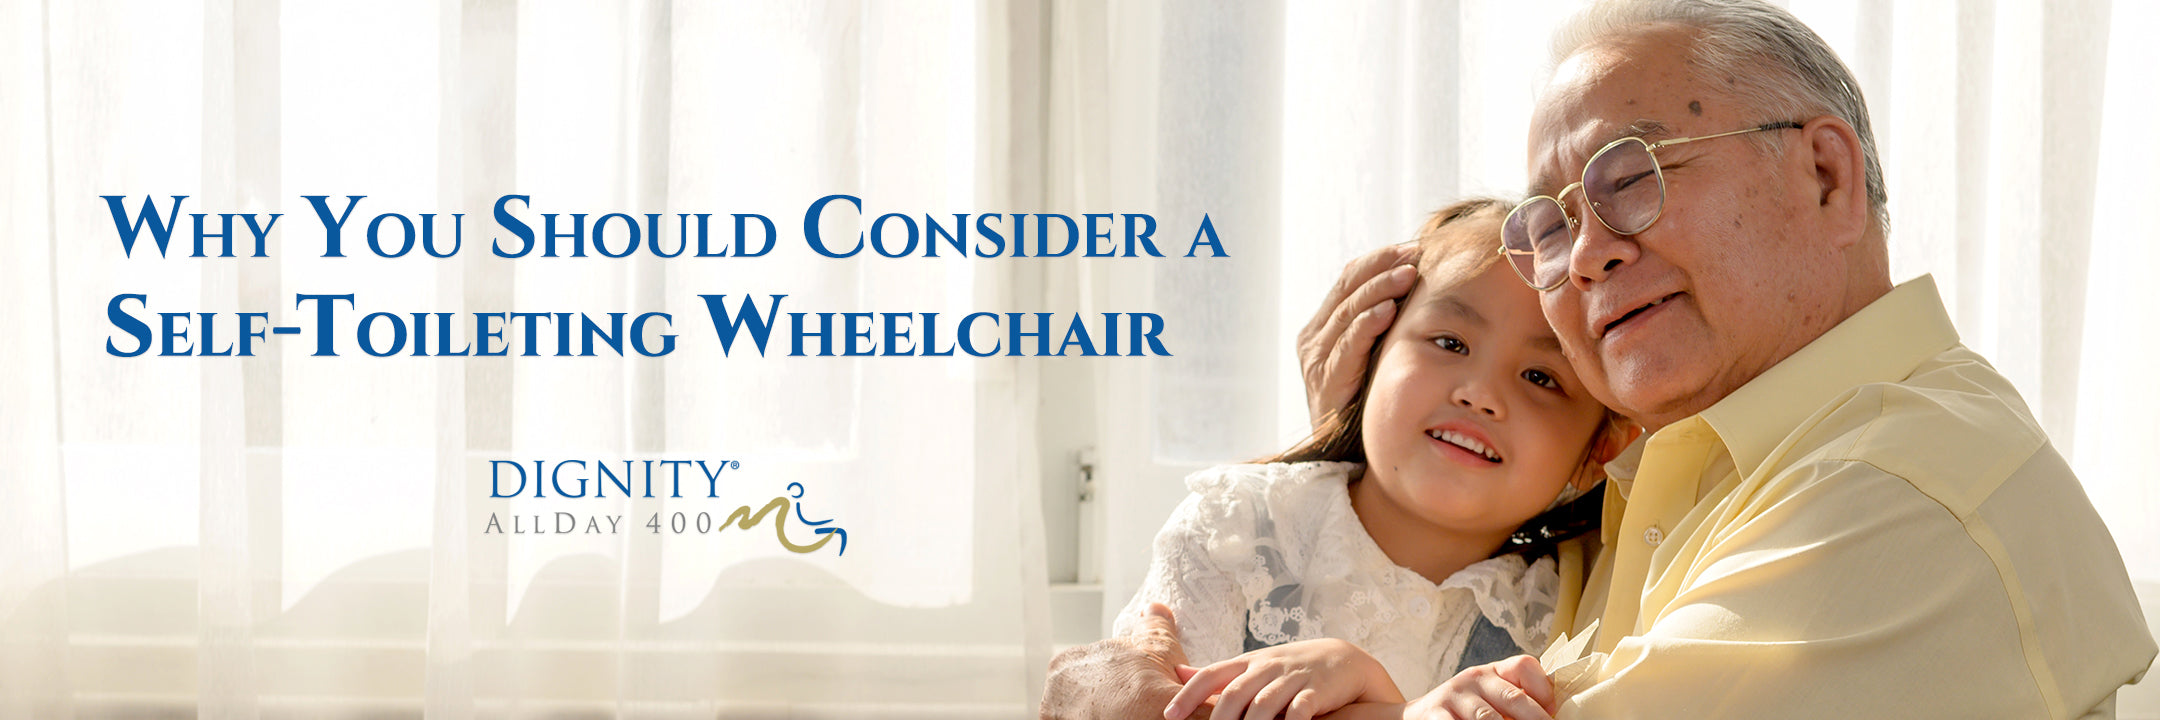 why you should consider a self-toileting wheelchair